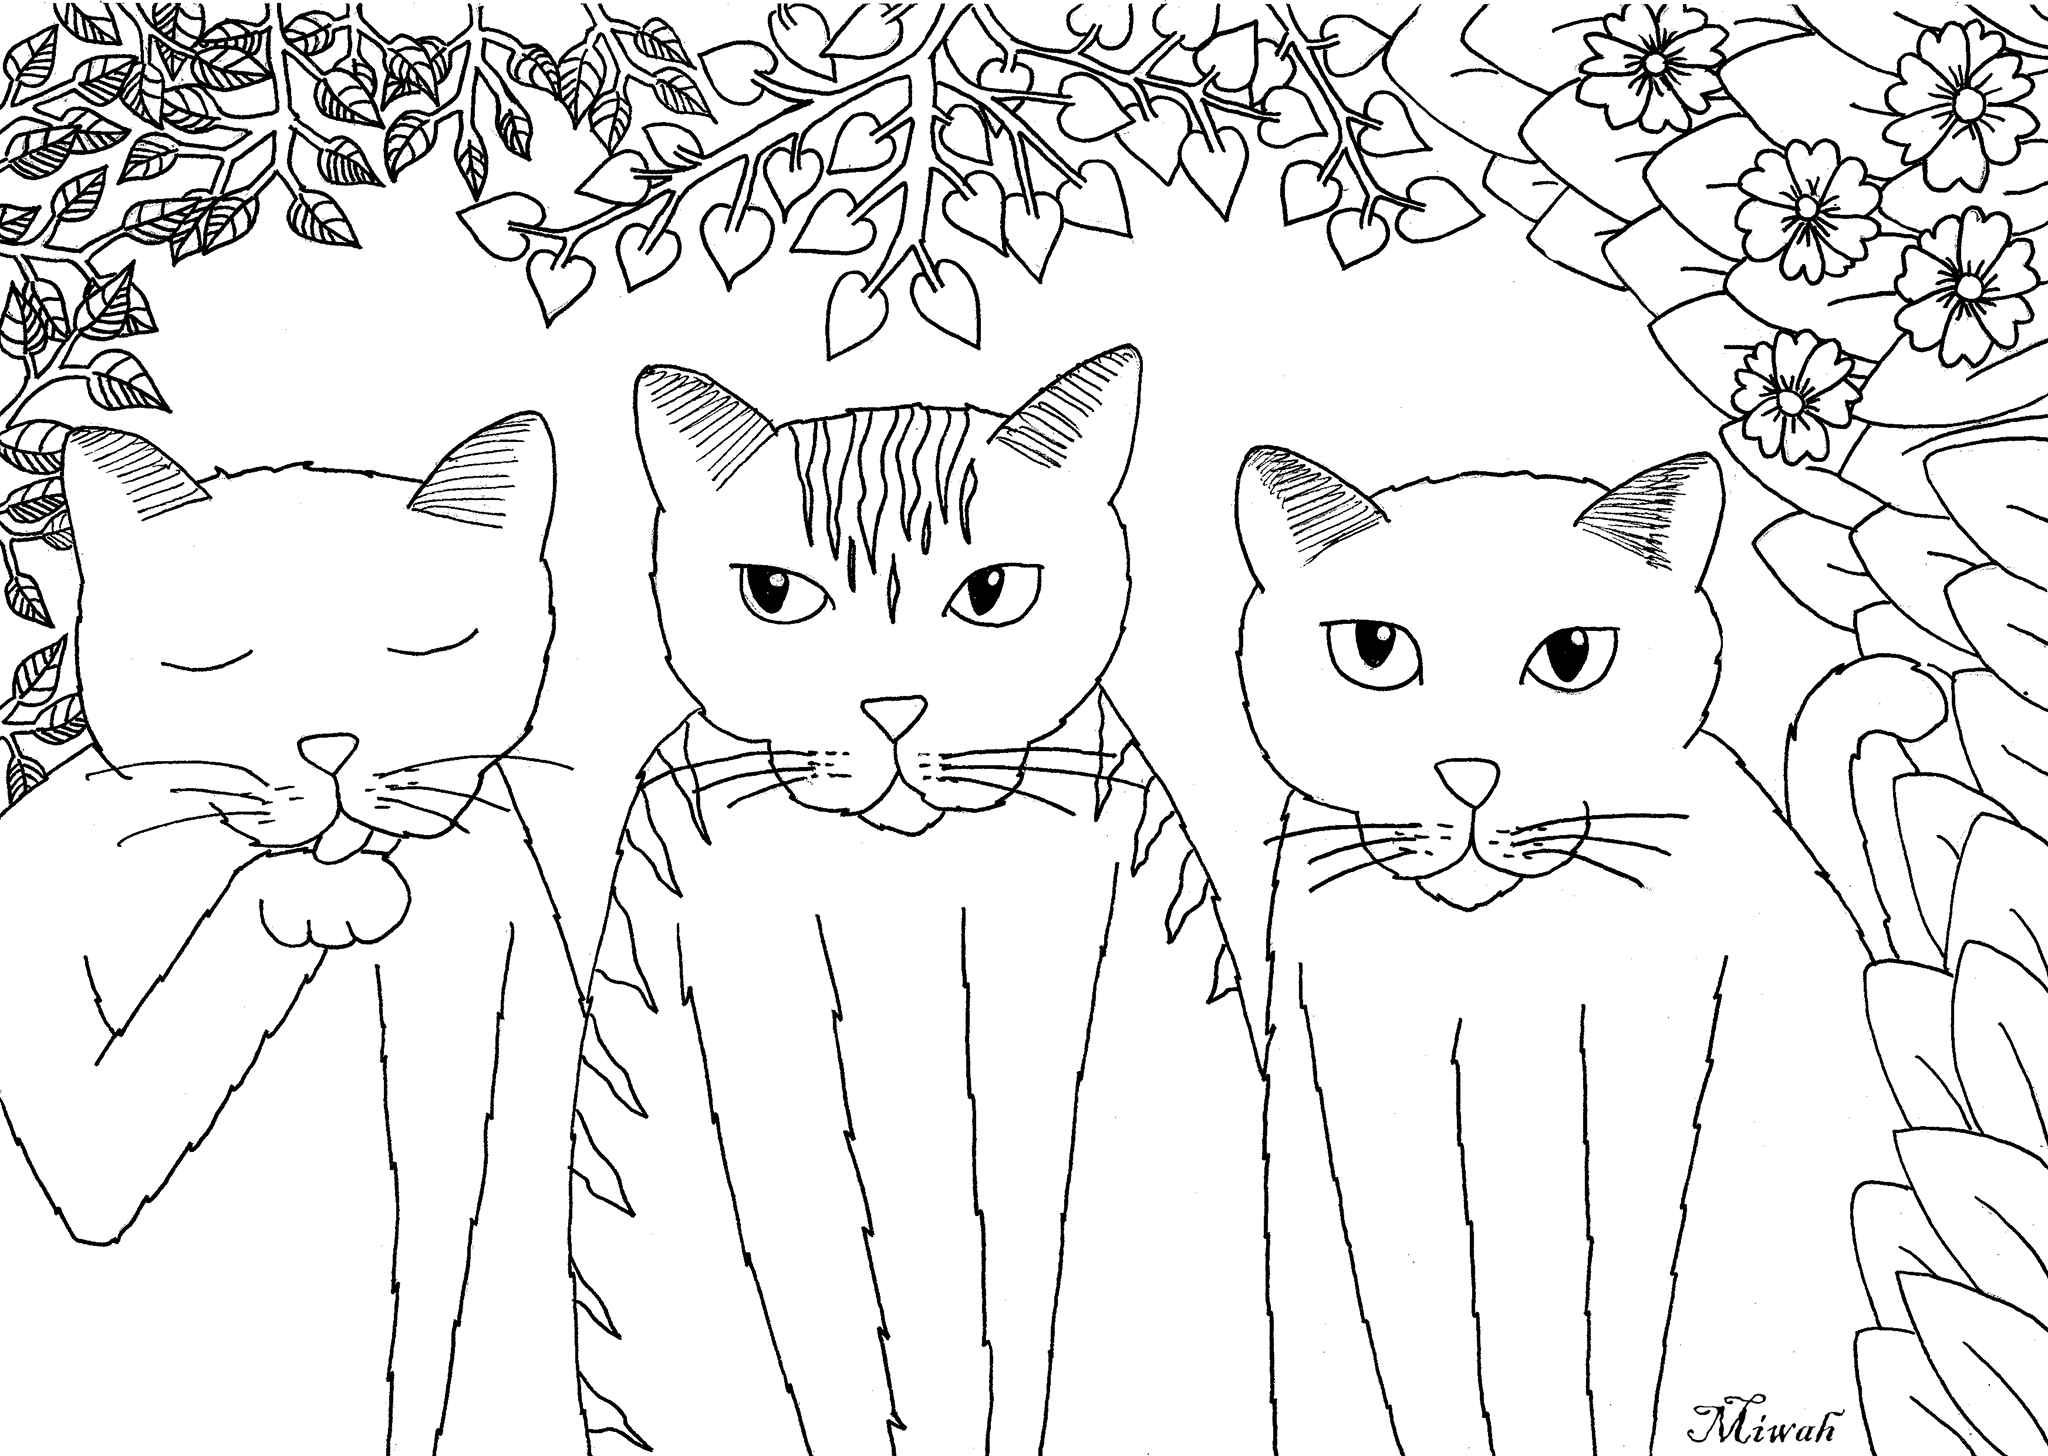 Tree Little Funny Kittens Simple Coloring Page From The Gallery Animals Artist Miwah Animal Coloring Pages Cat Coloring Page Cat Coloring Book